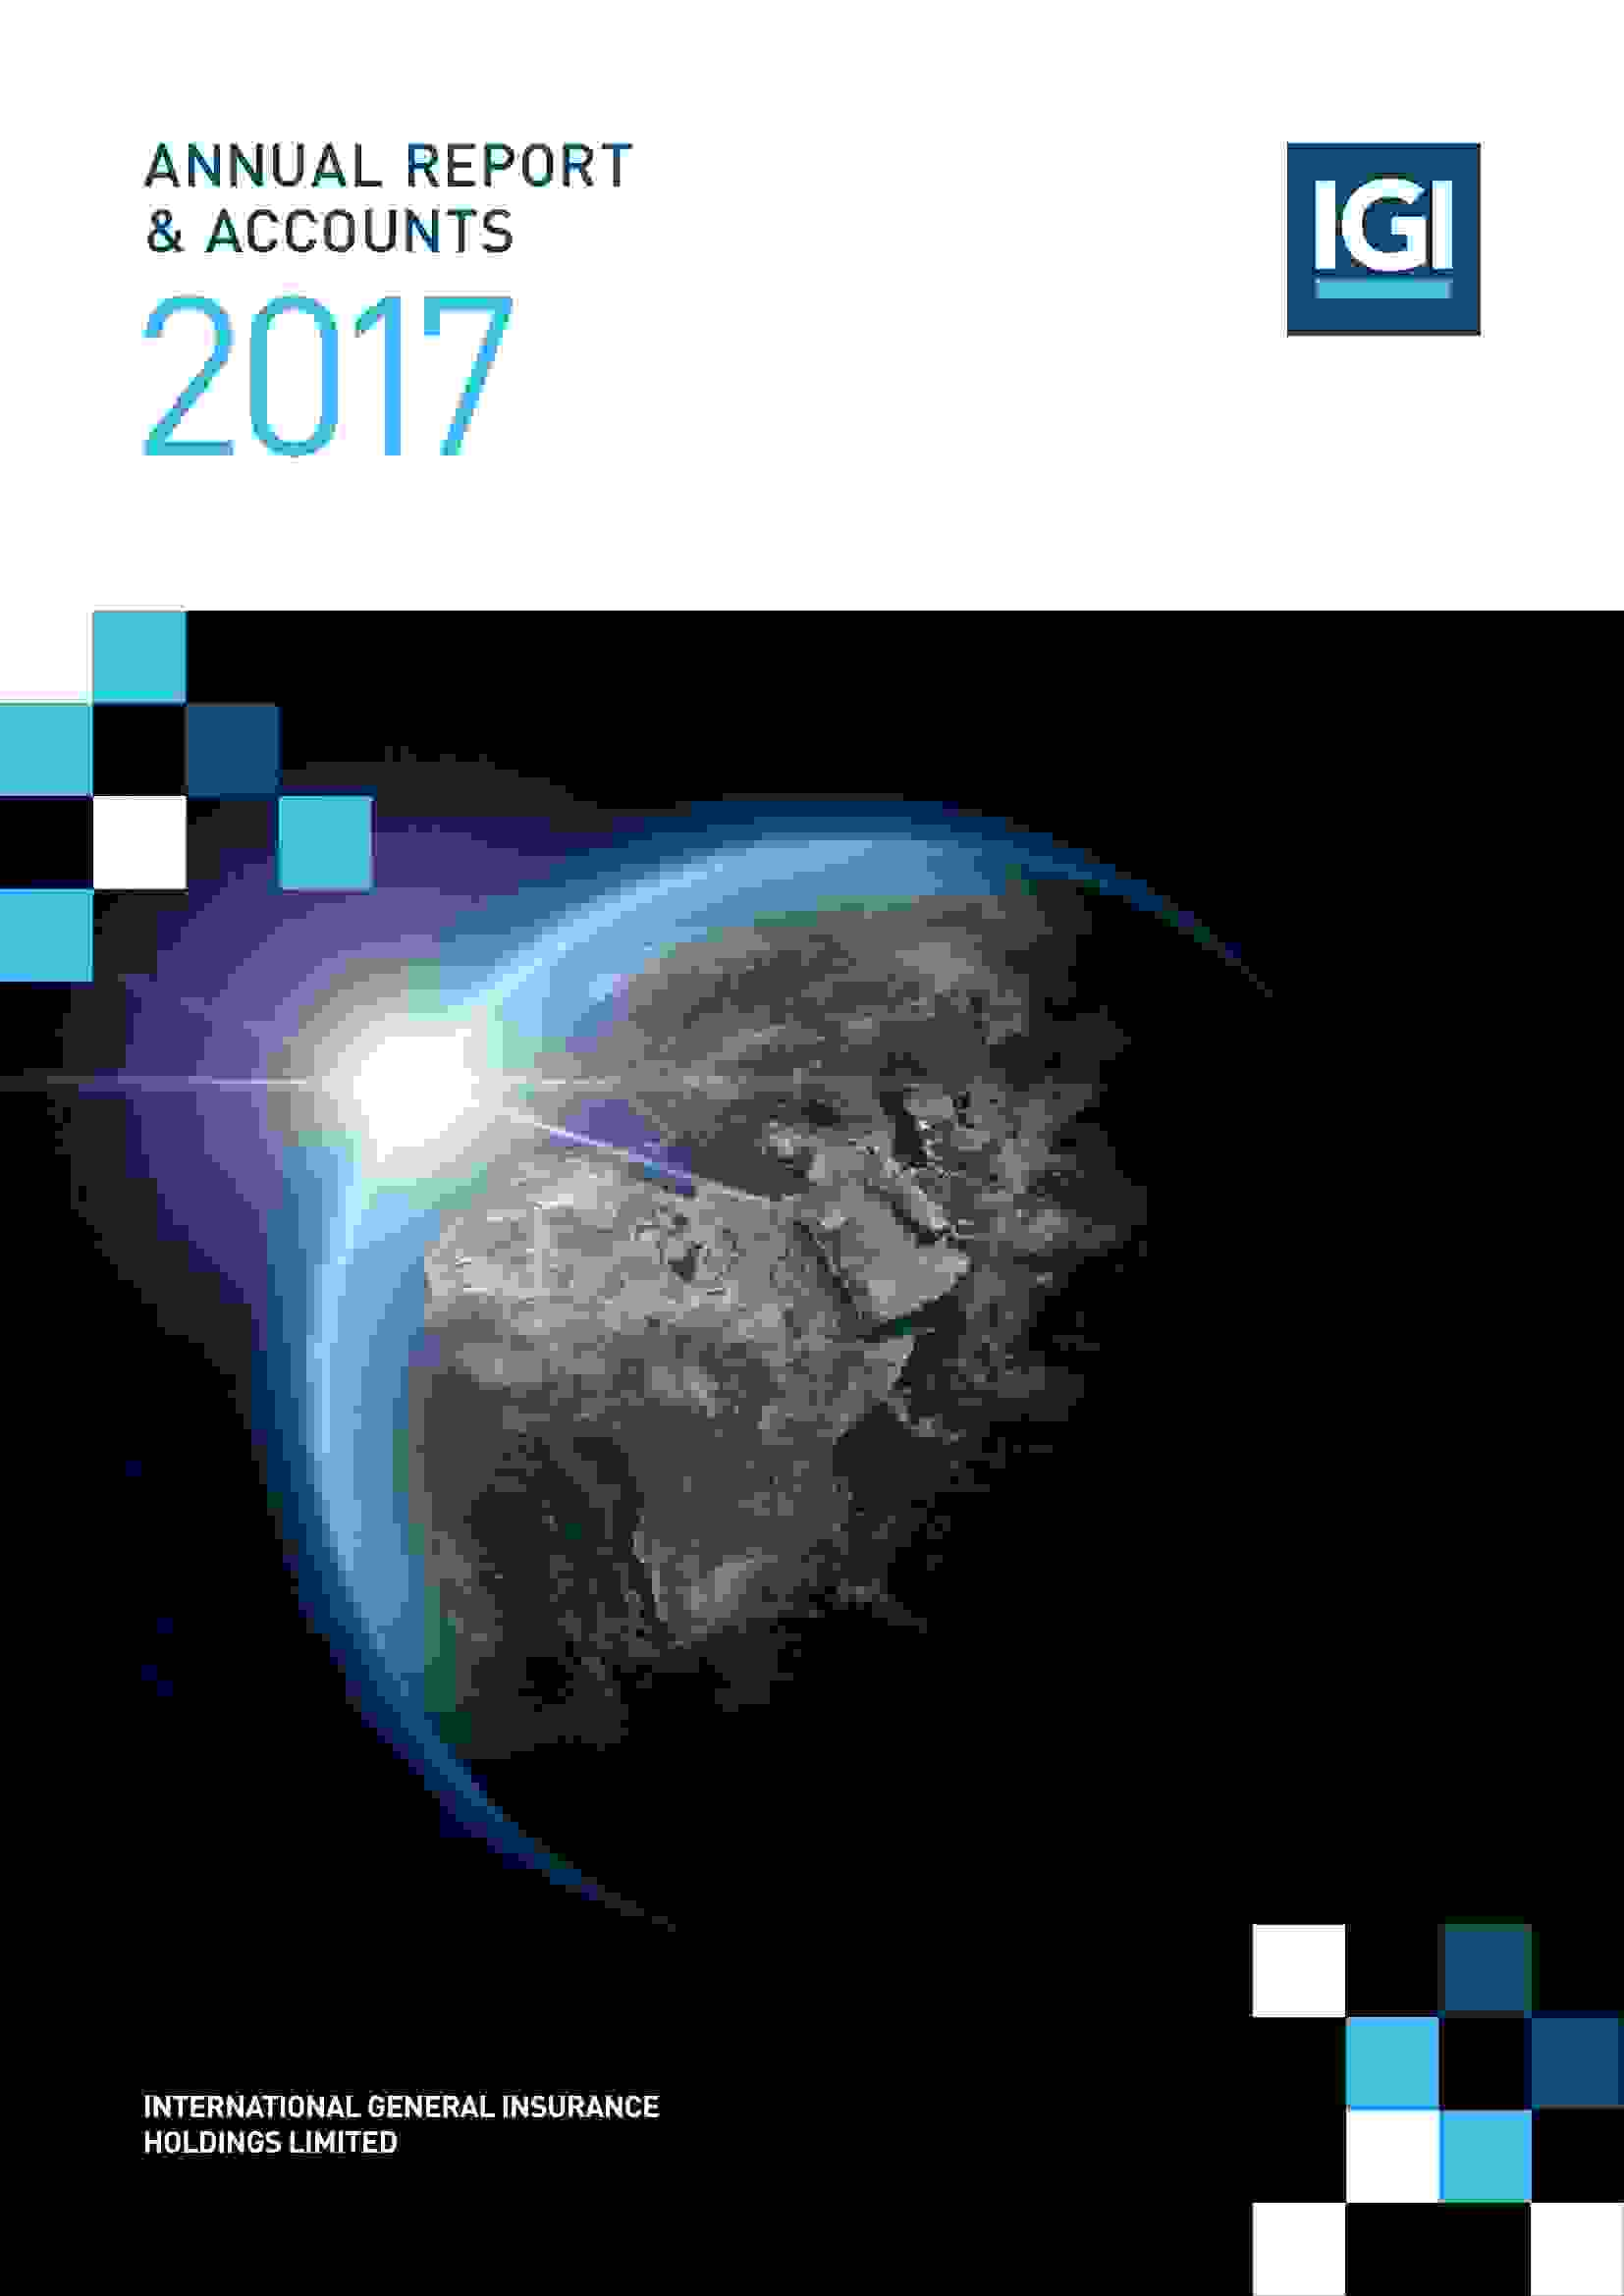 Annual Report and Accounts 2017